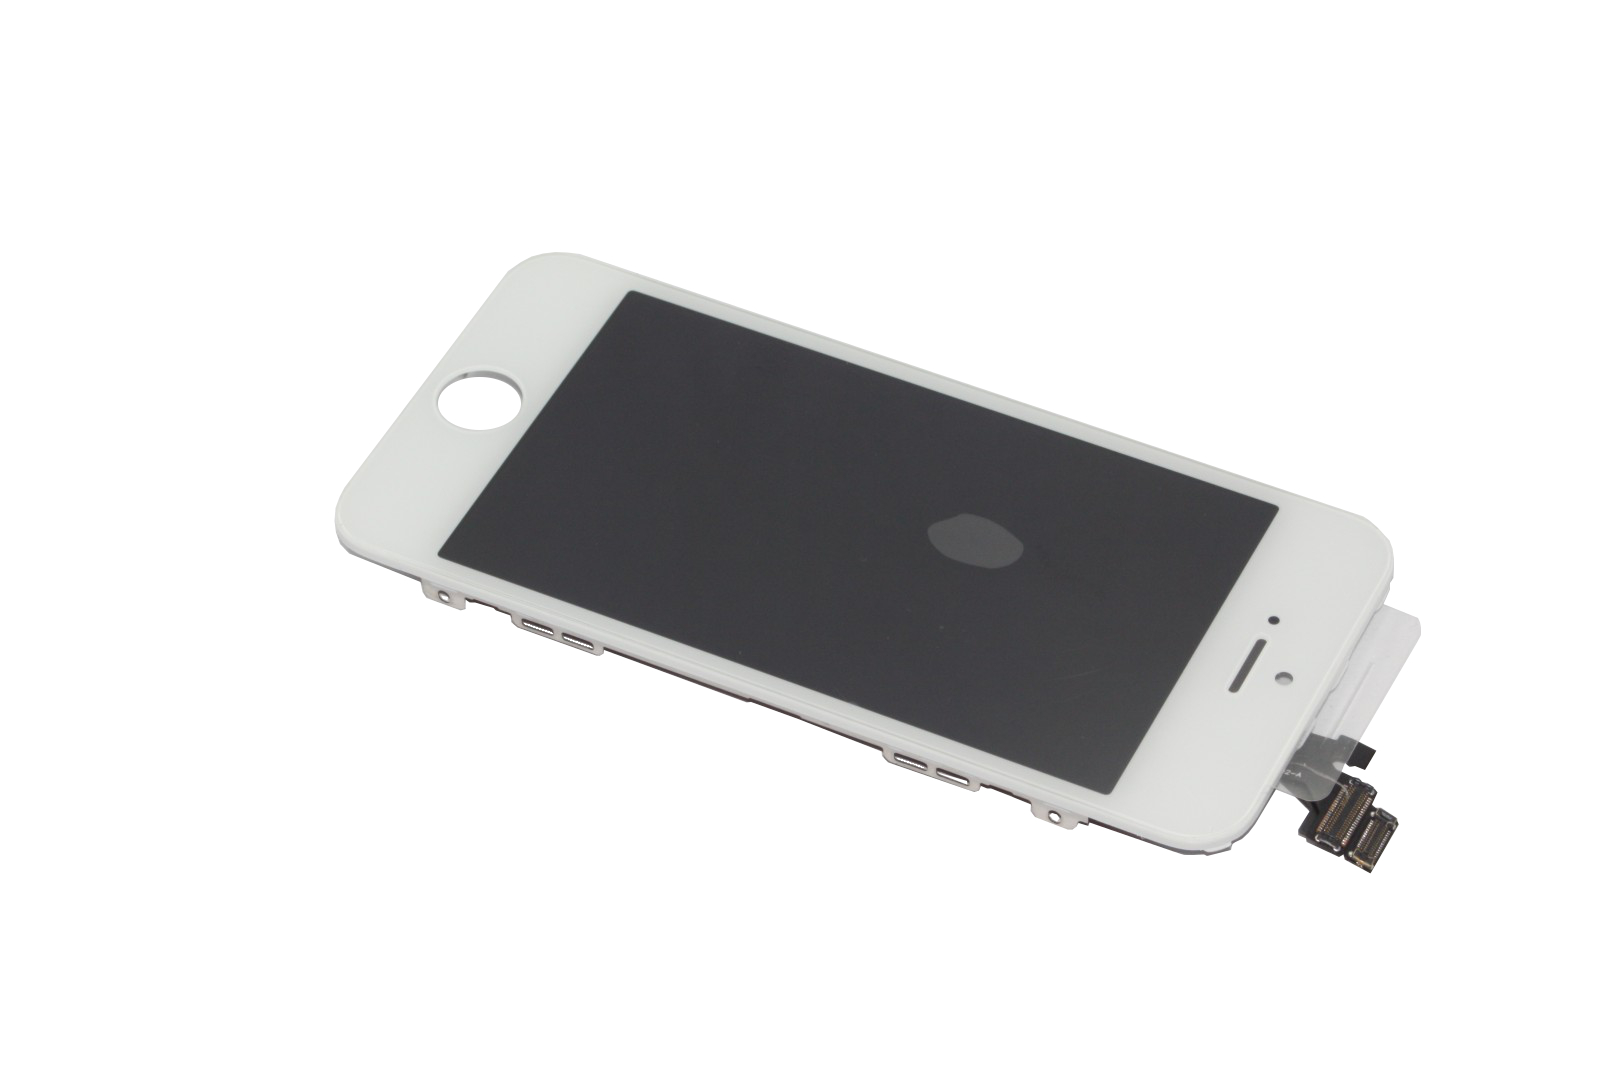 Display Glas Display Assembly Lcd Glass Replacement Display For Apple Iphone 5 White White